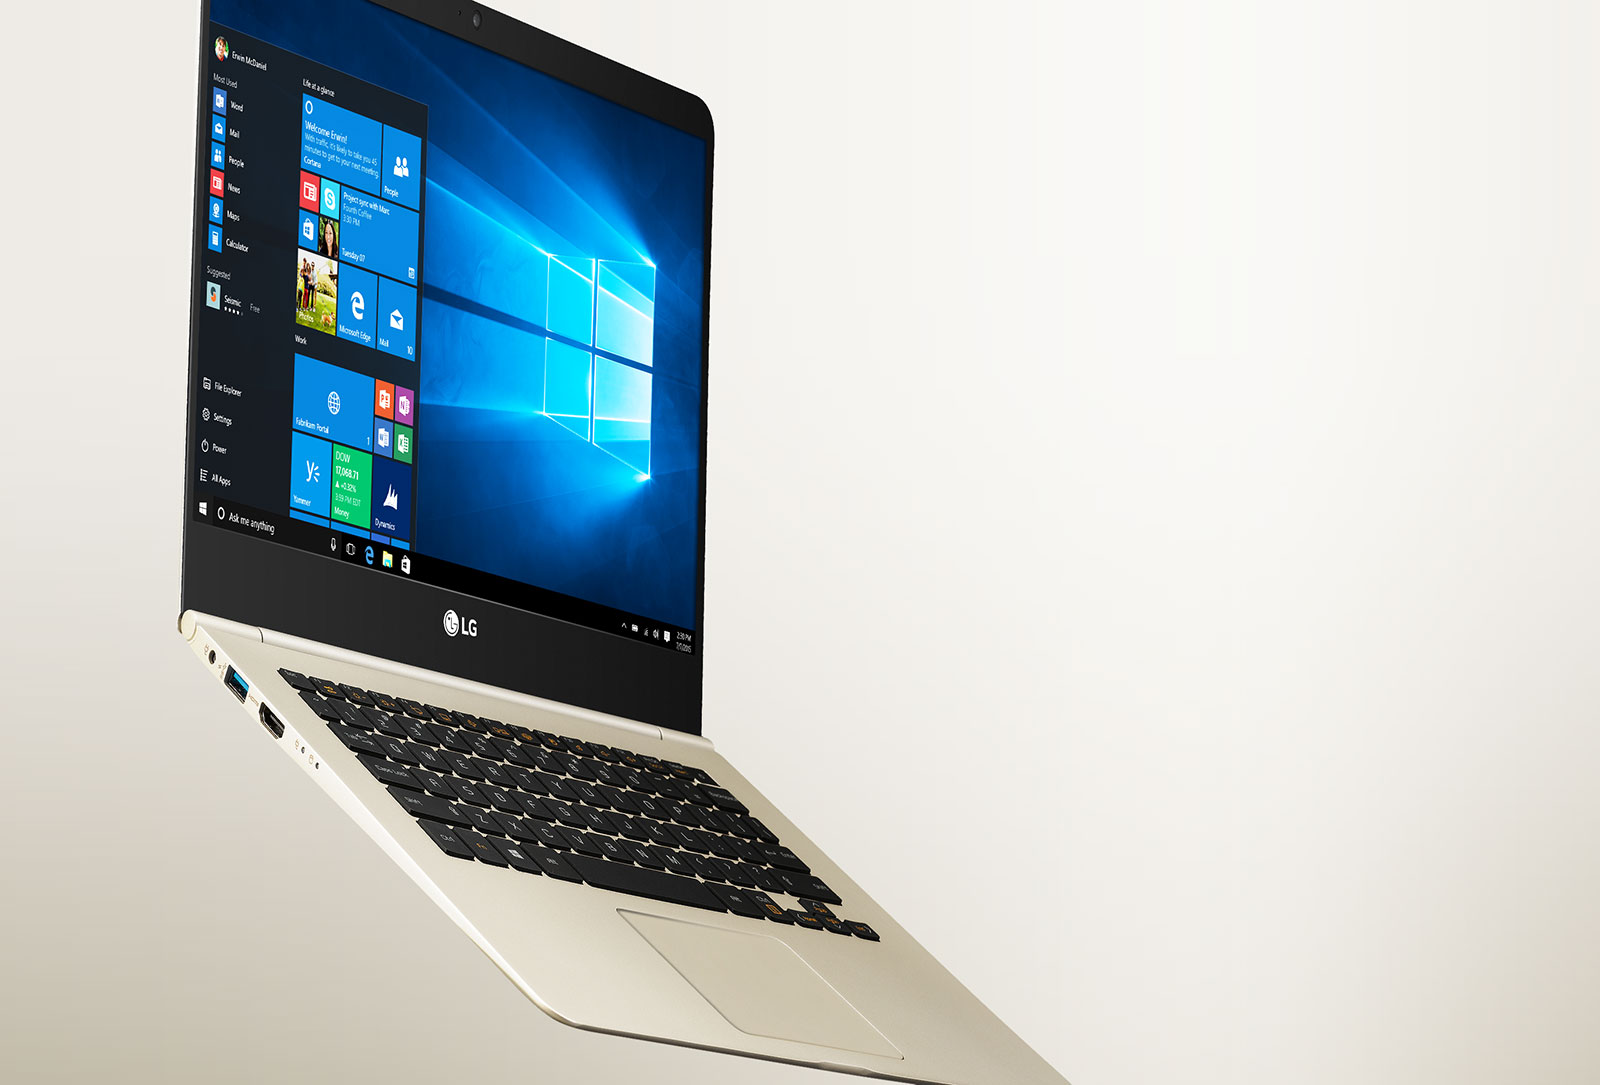 LG has an updated Gram laptop lineup that claims battery life up to an unbelievable 24 hours